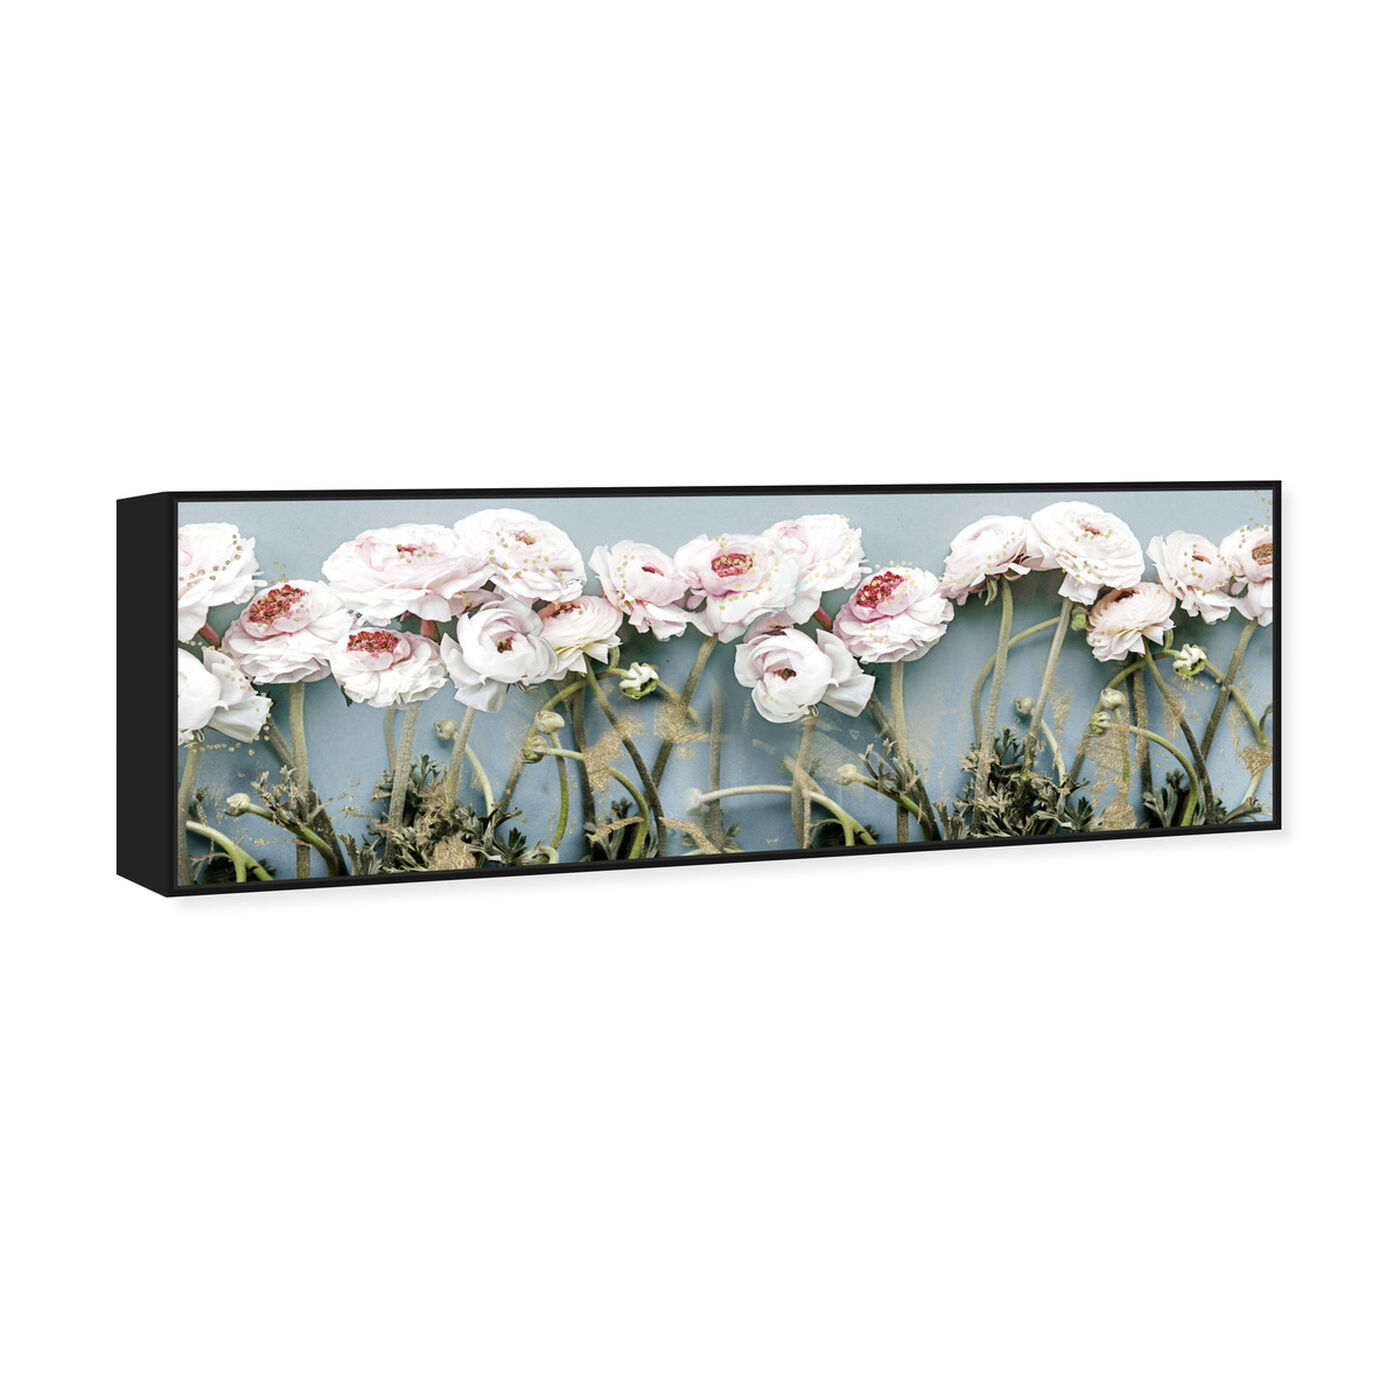 Angled view of Floral Dreaming featuring floral and botanical and florals art.